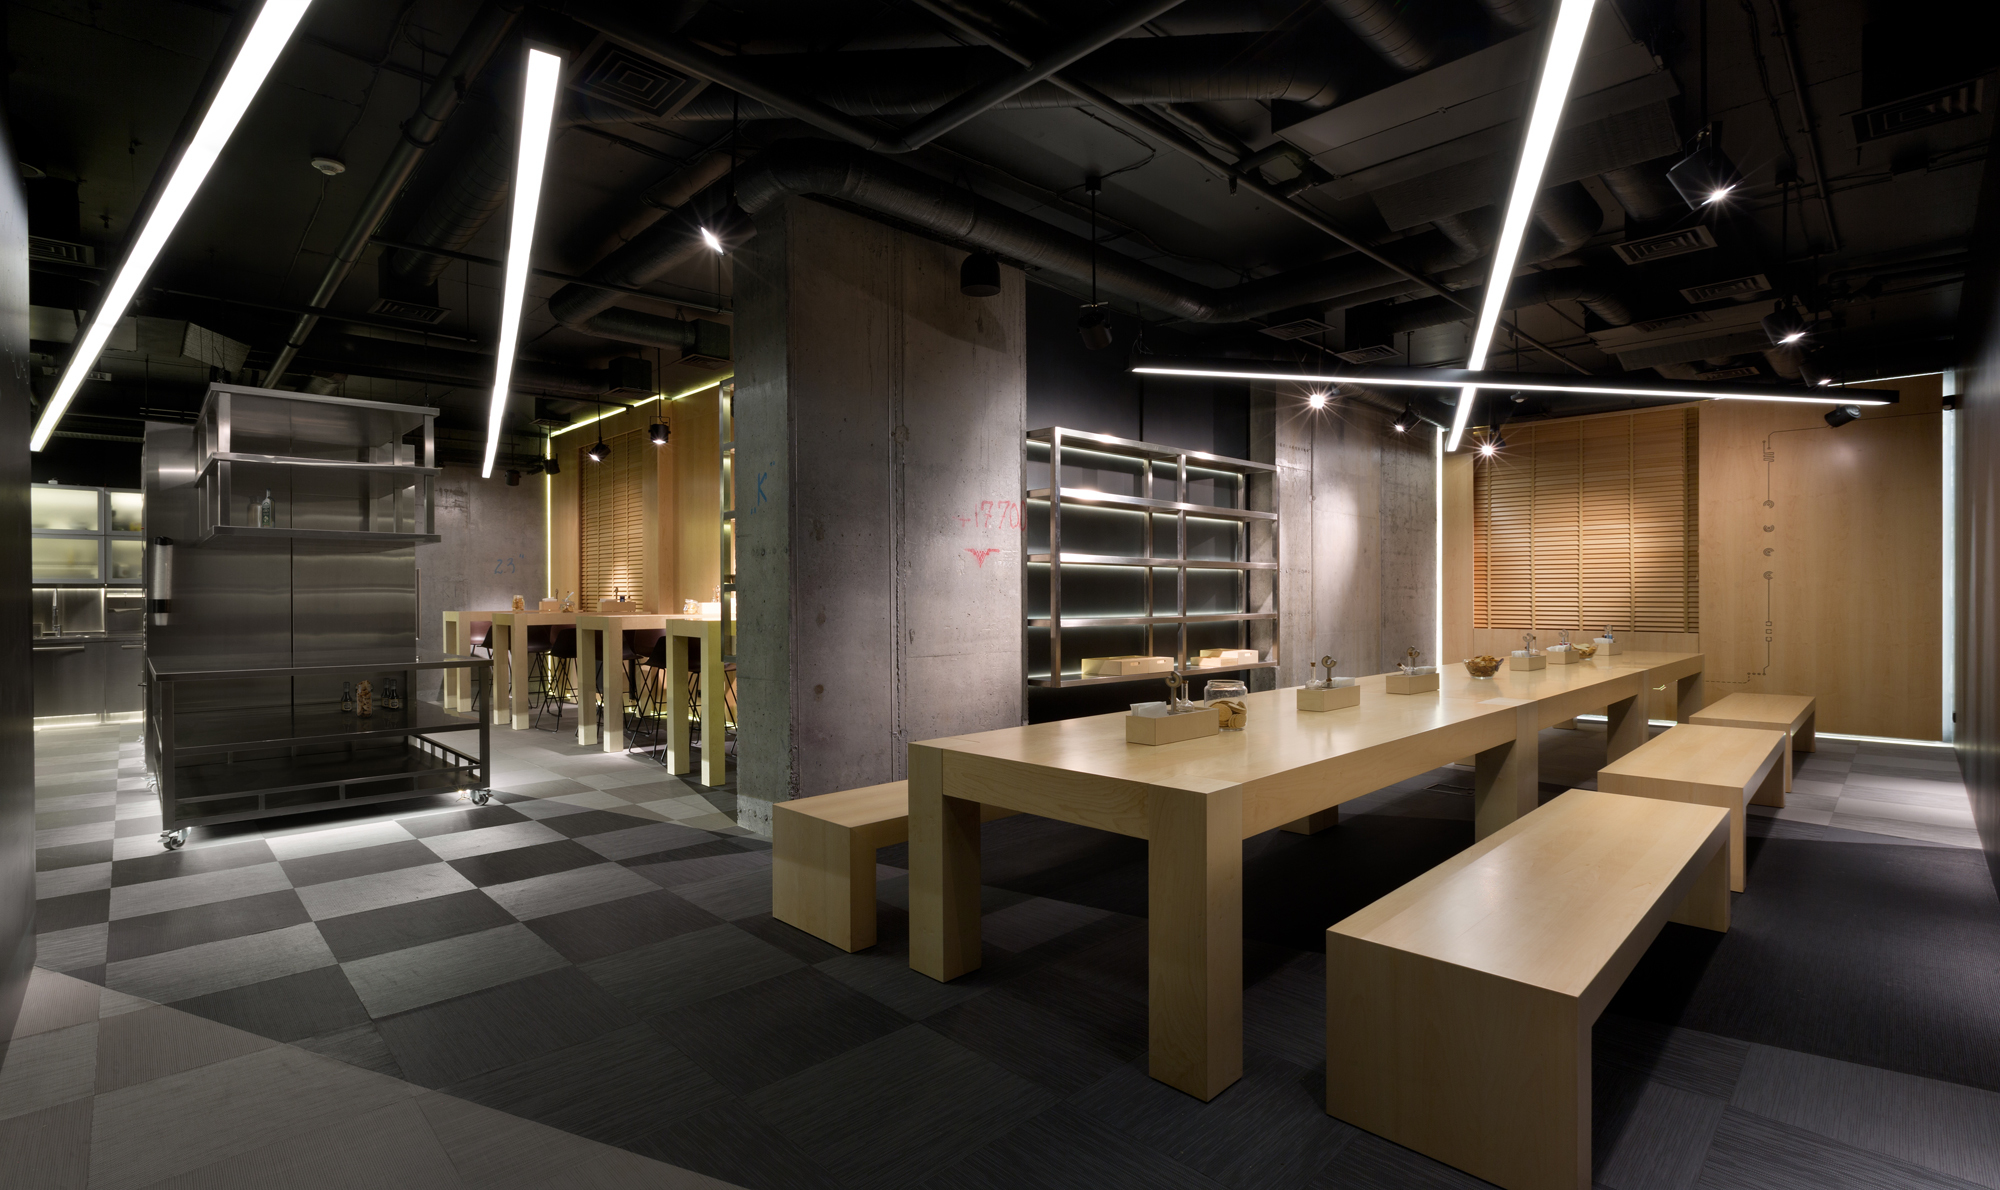 Office k2 baraban archdaily for Office design archdaily